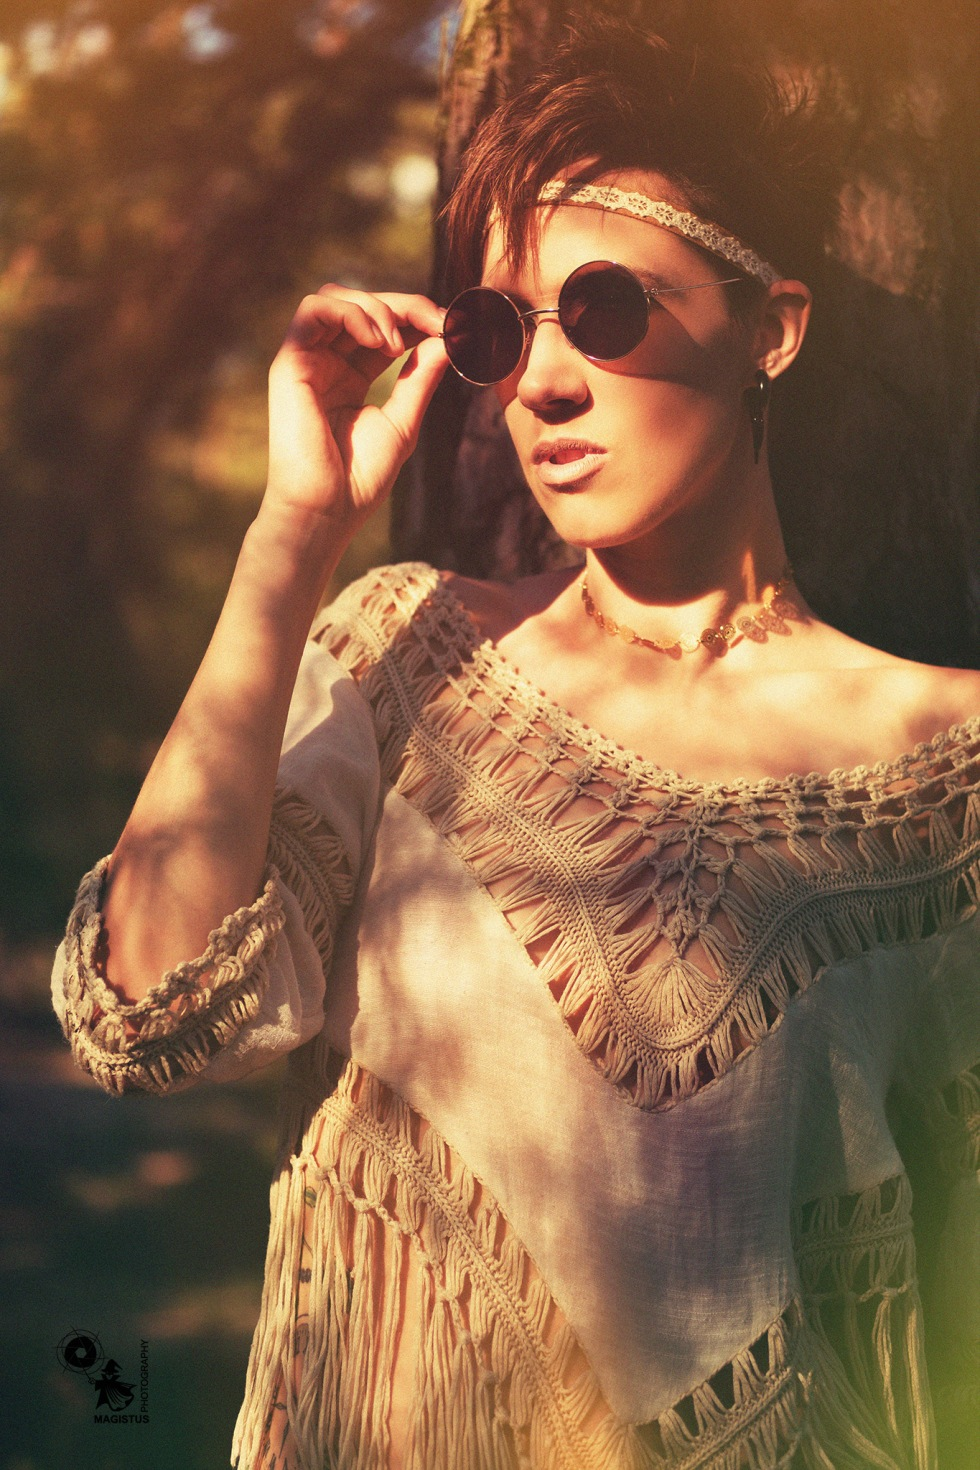 Sunglasses - fantastic model is posing in a hippie styling in the summer sun - © by Magistus